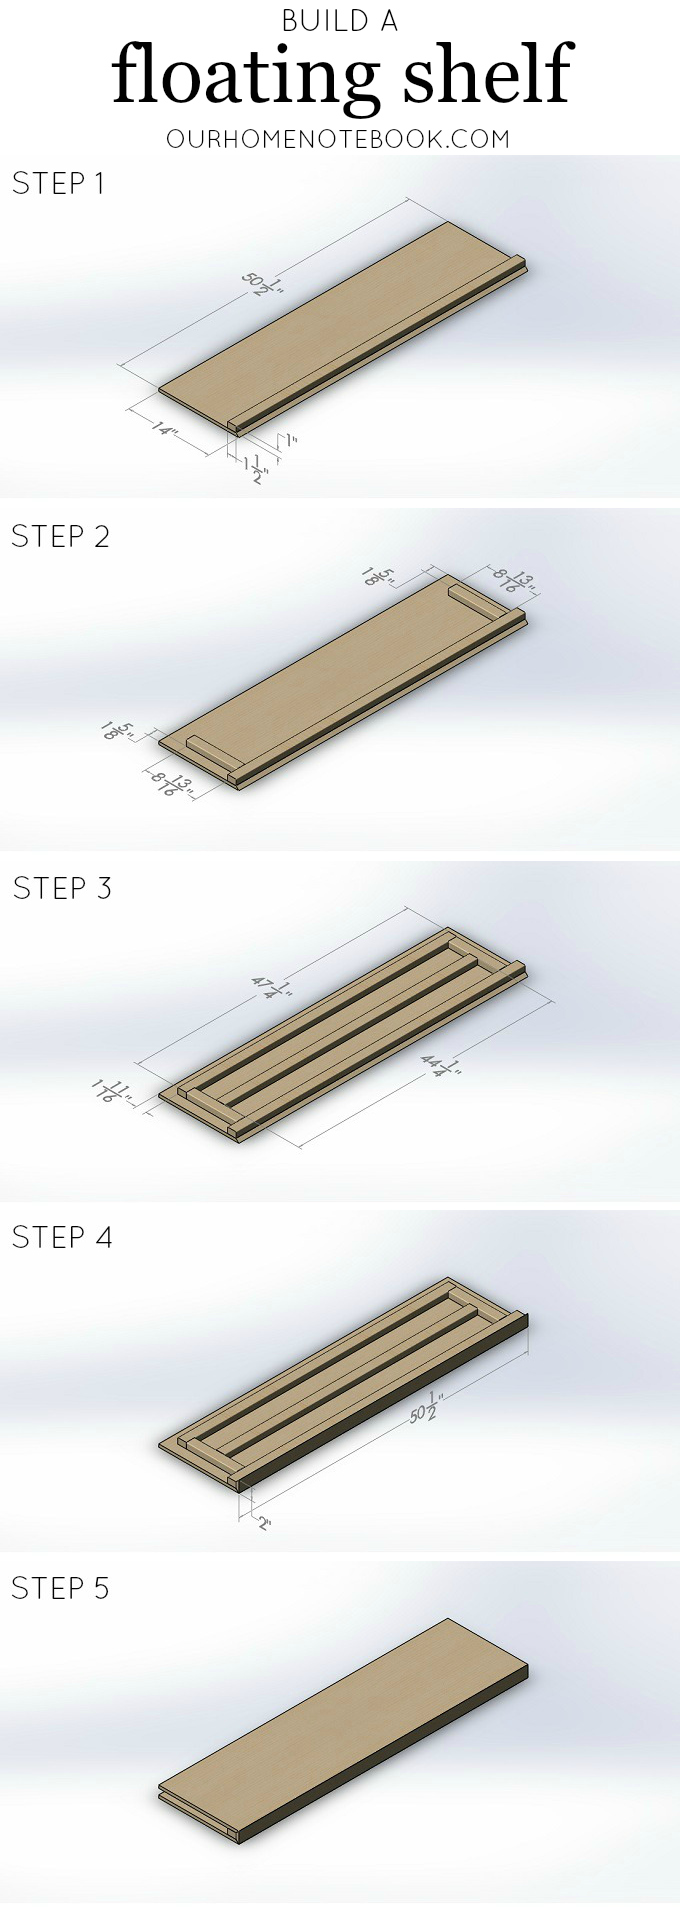 build a floating shelf